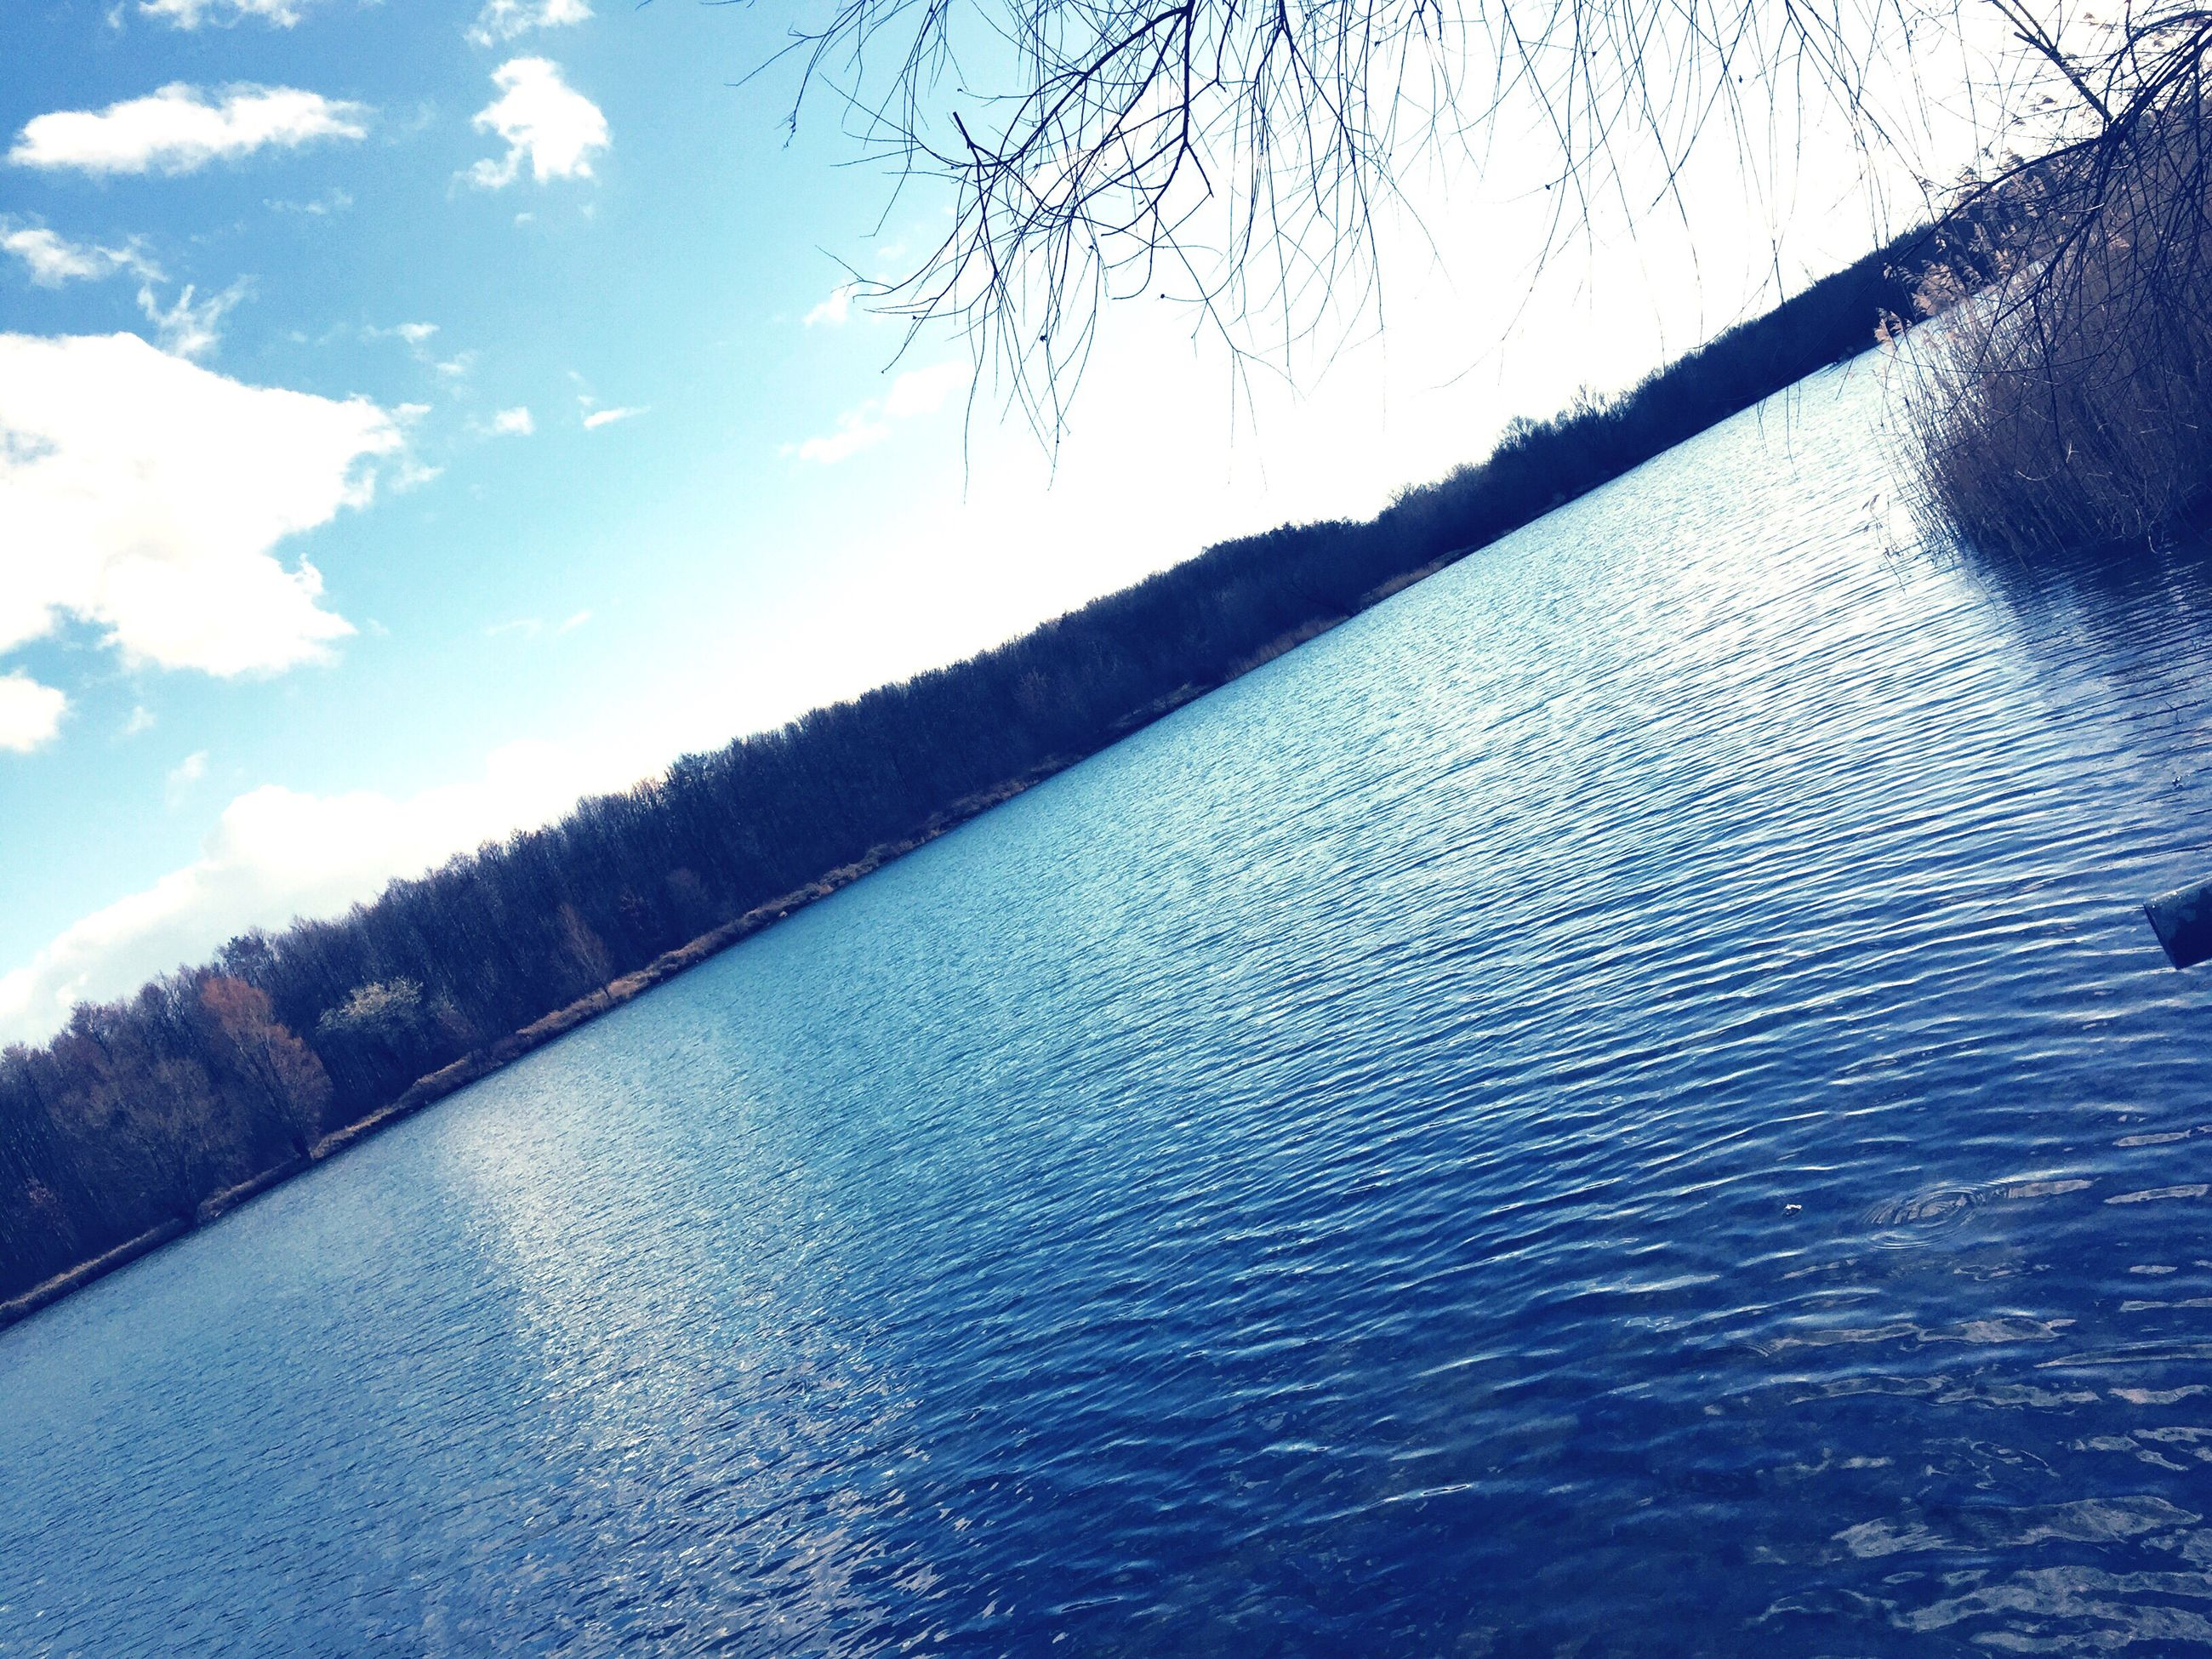 water, waterfront, tranquility, tranquil scene, tree, sky, rippled, scenics, nature, beauty in nature, river, lake, day, idyllic, outdoors, no people, cloud - sky, non-urban scene, cloud, blue